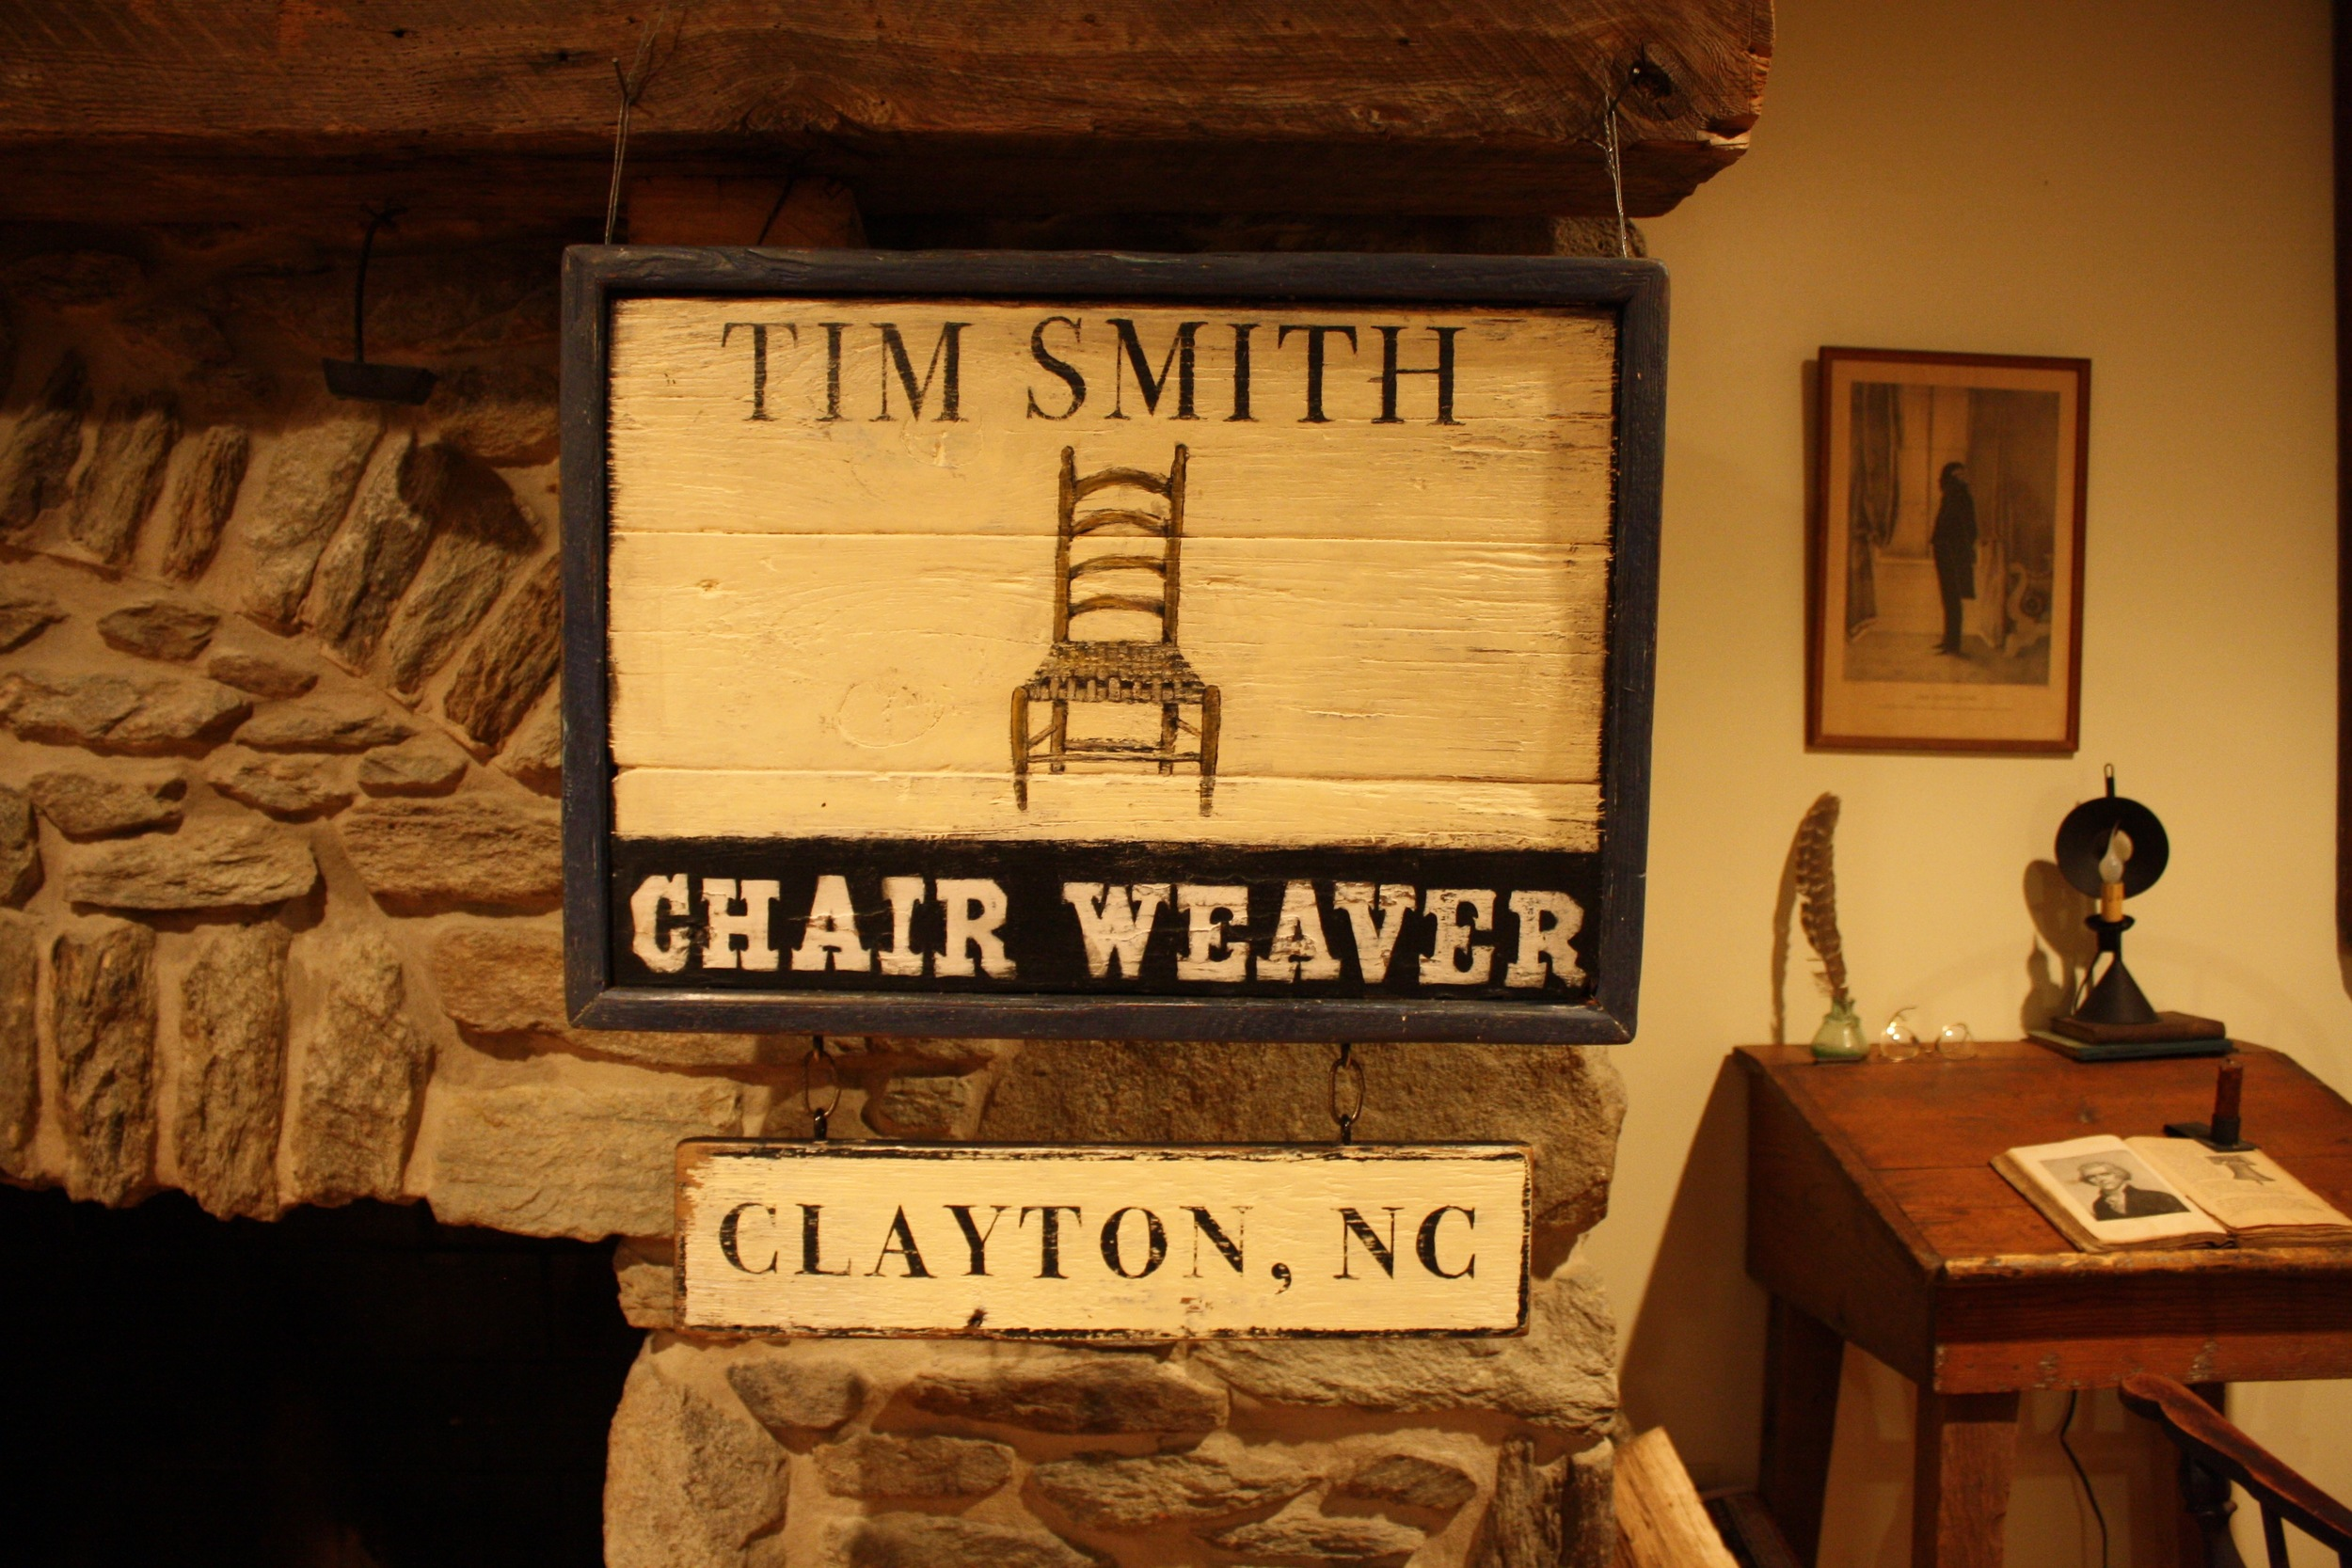 Tim Smith, Chair Weaver (with drop-down)